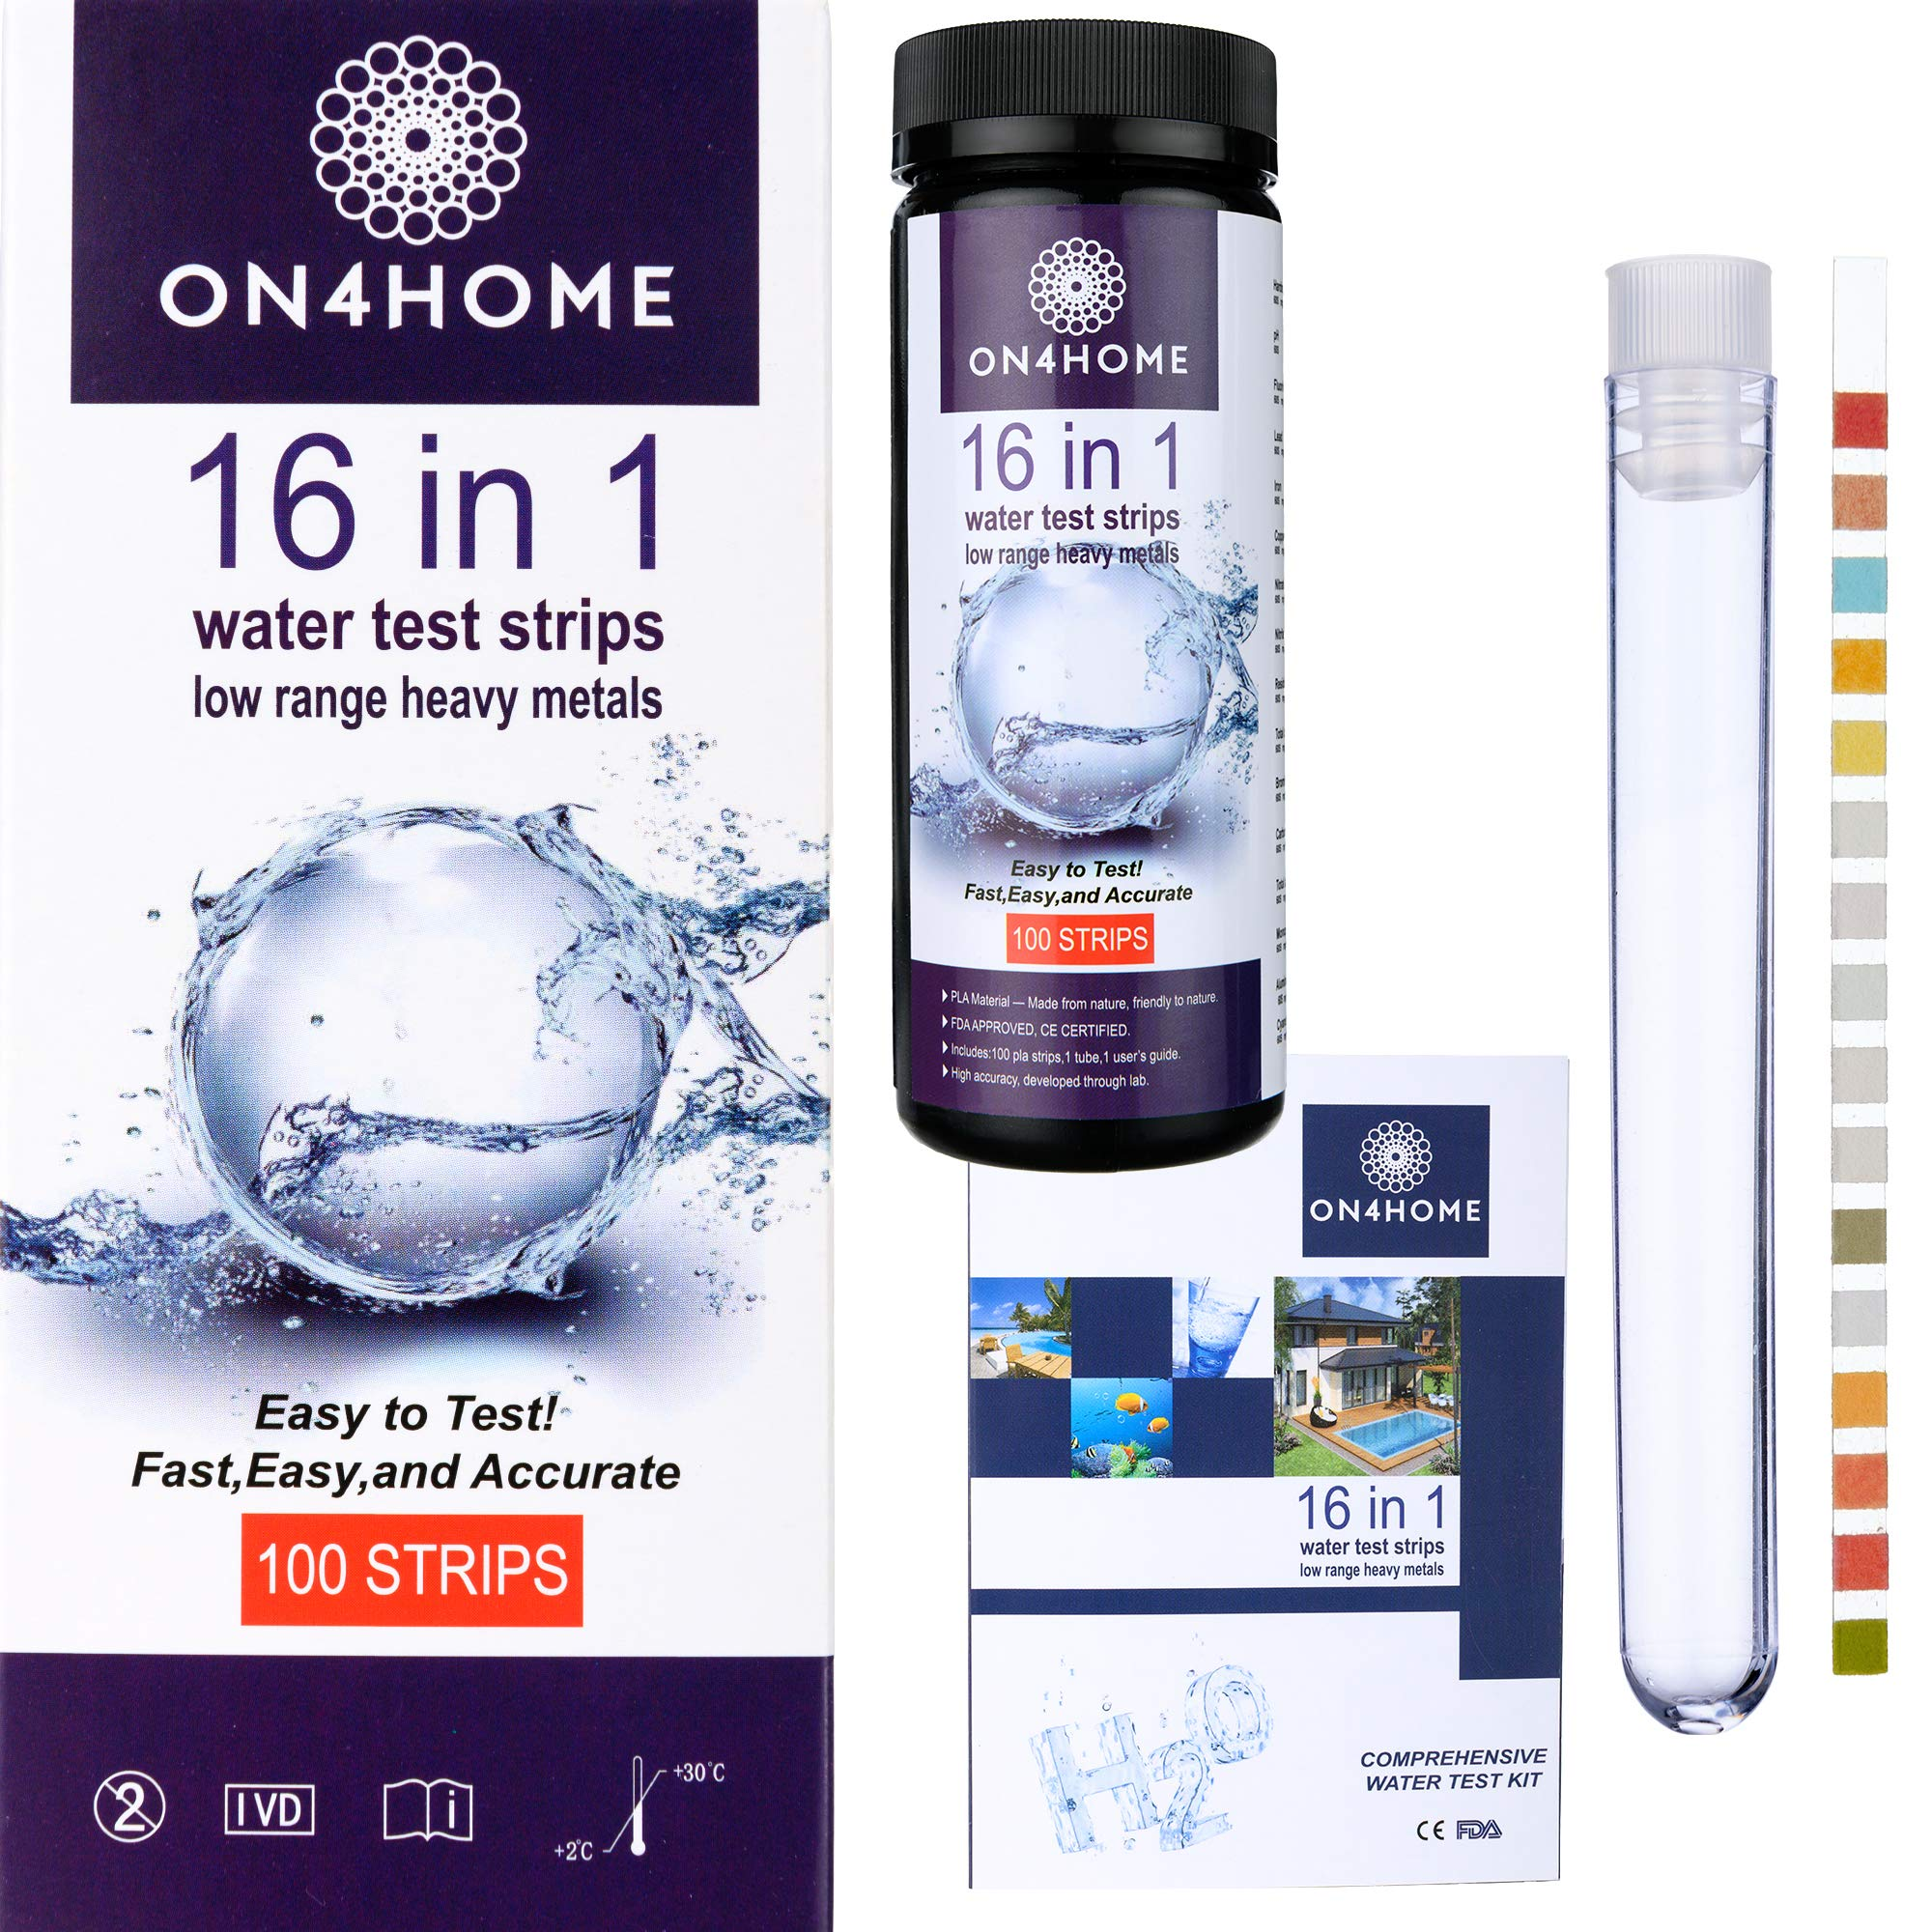 16-in-1 Water Test Strips by ON4HOME - HIGH Fidelity Water Test Kit ■ 60 Seconds Testing to Detect Hardness, Lead, Ph, Flouride, Mercury, Copper, Nitrates, Nitrites, Alkalinity, Aluminium and More by ON 4 HOME